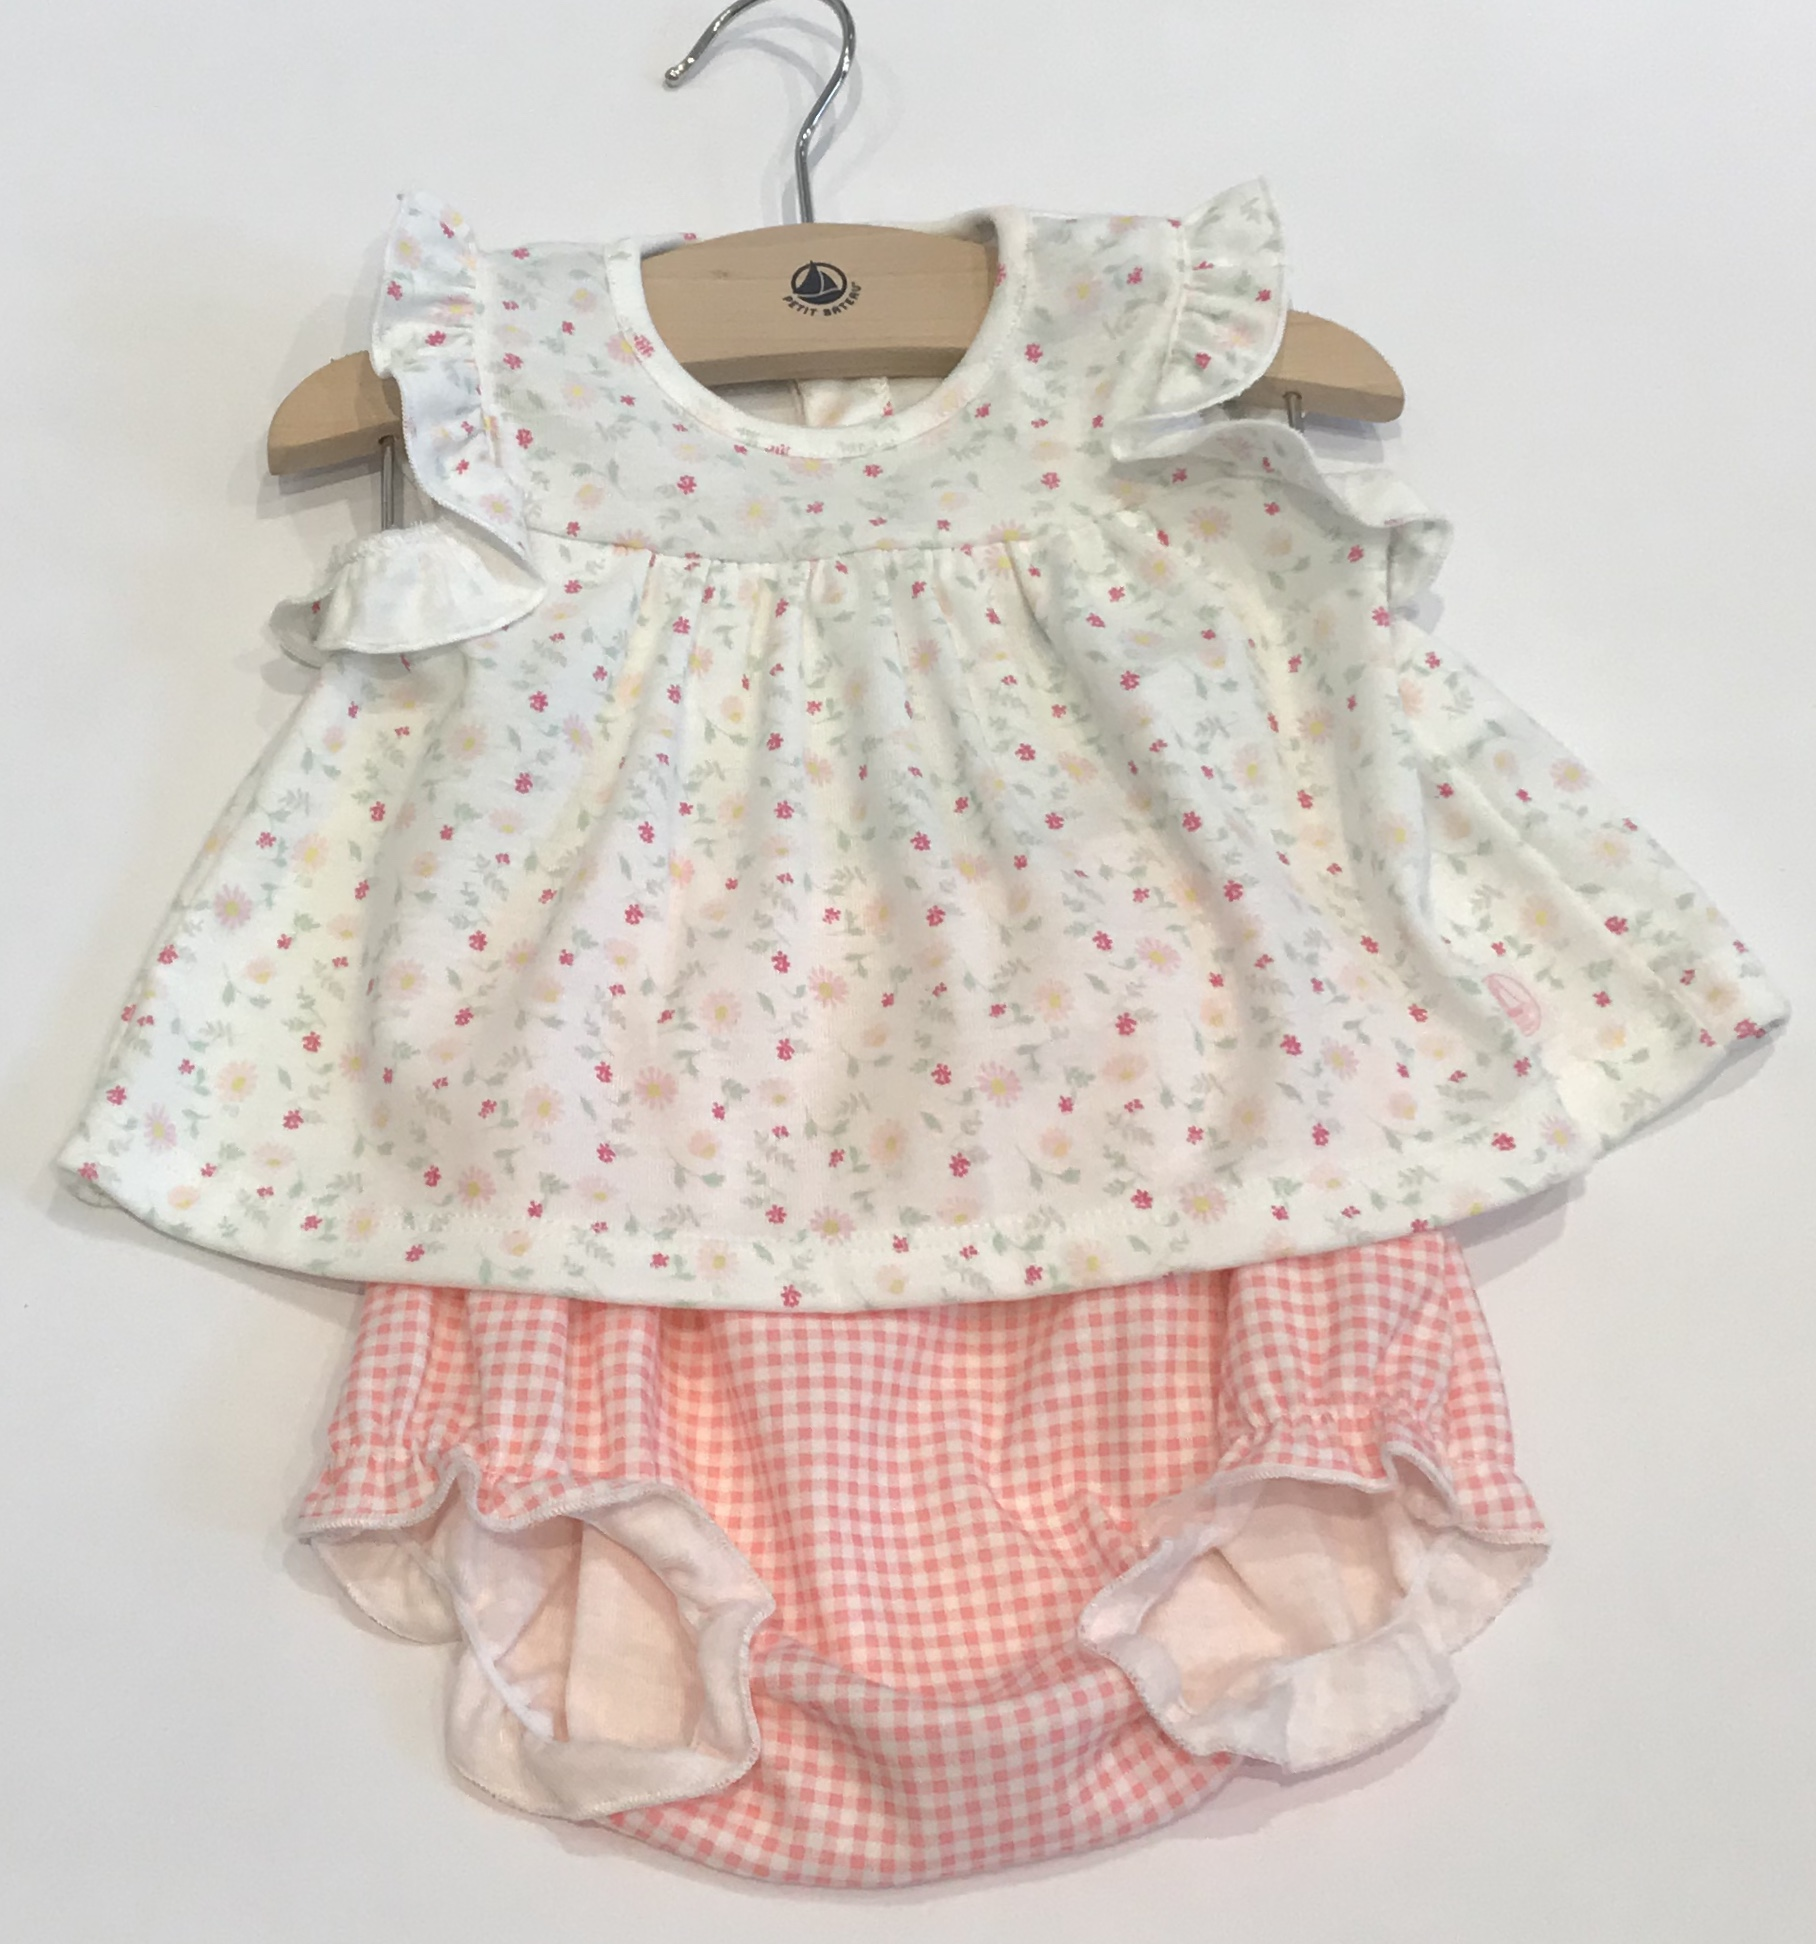 Petit Bateau 2 Piece Dress Set